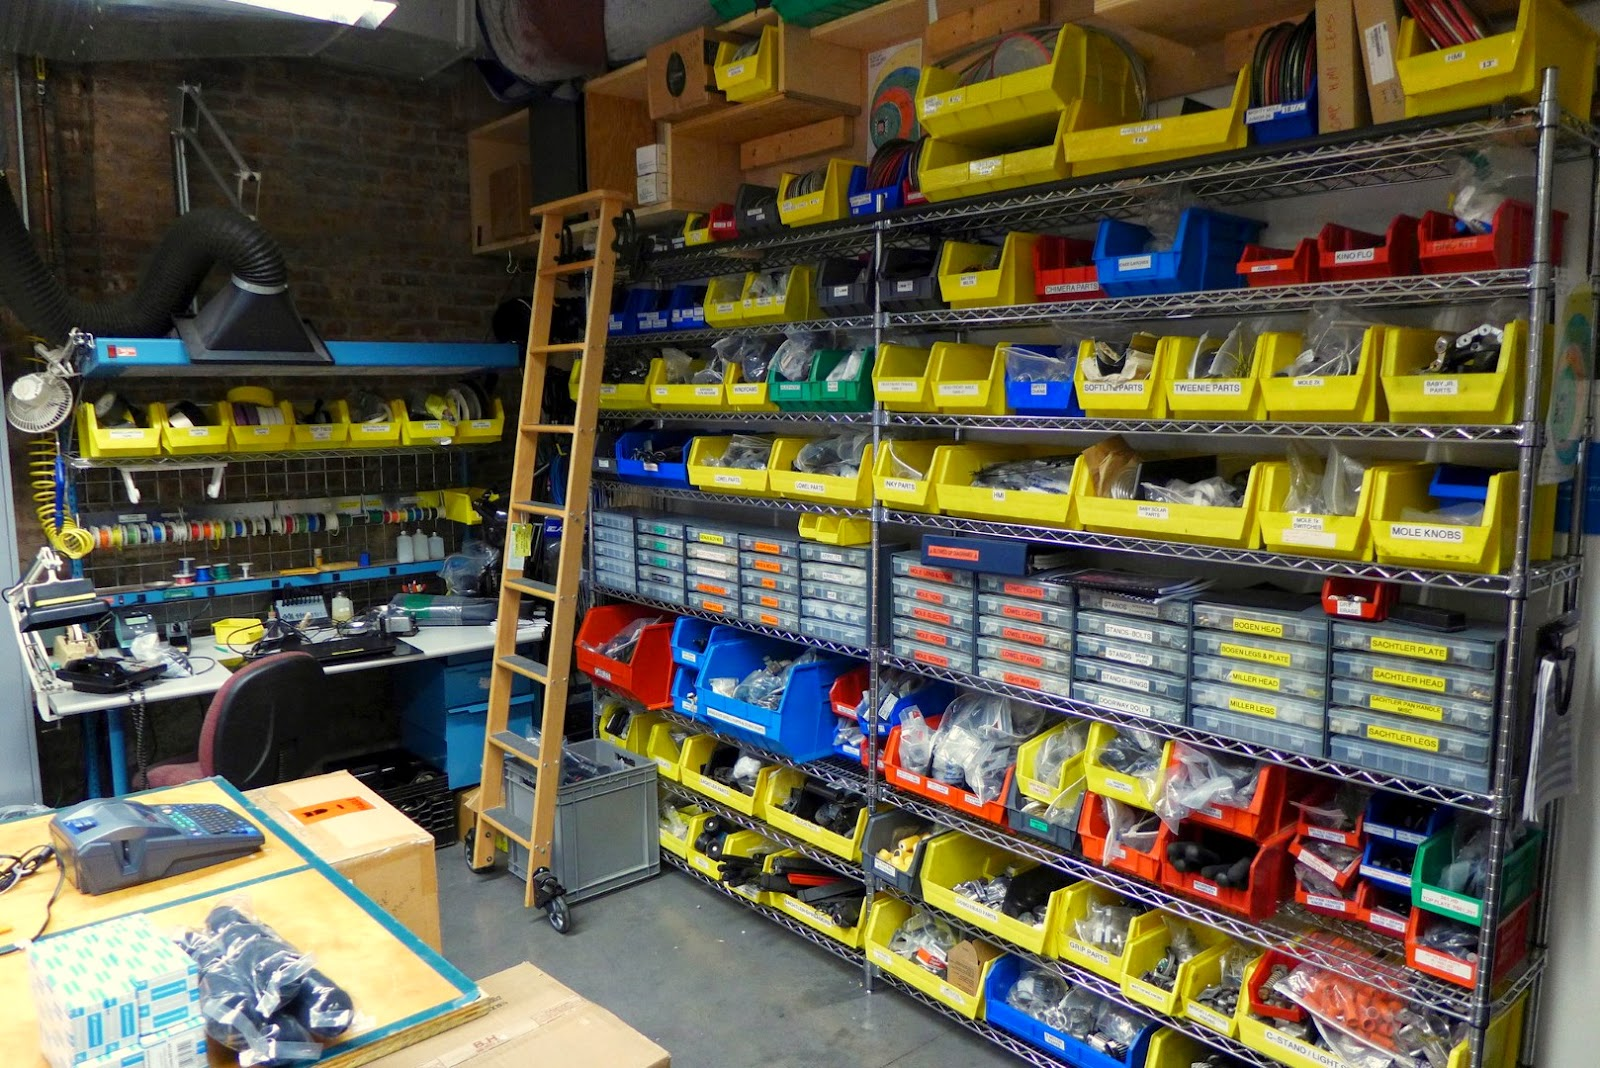 how to organize your shop, organize bins, sorting, organize, shop, workshop